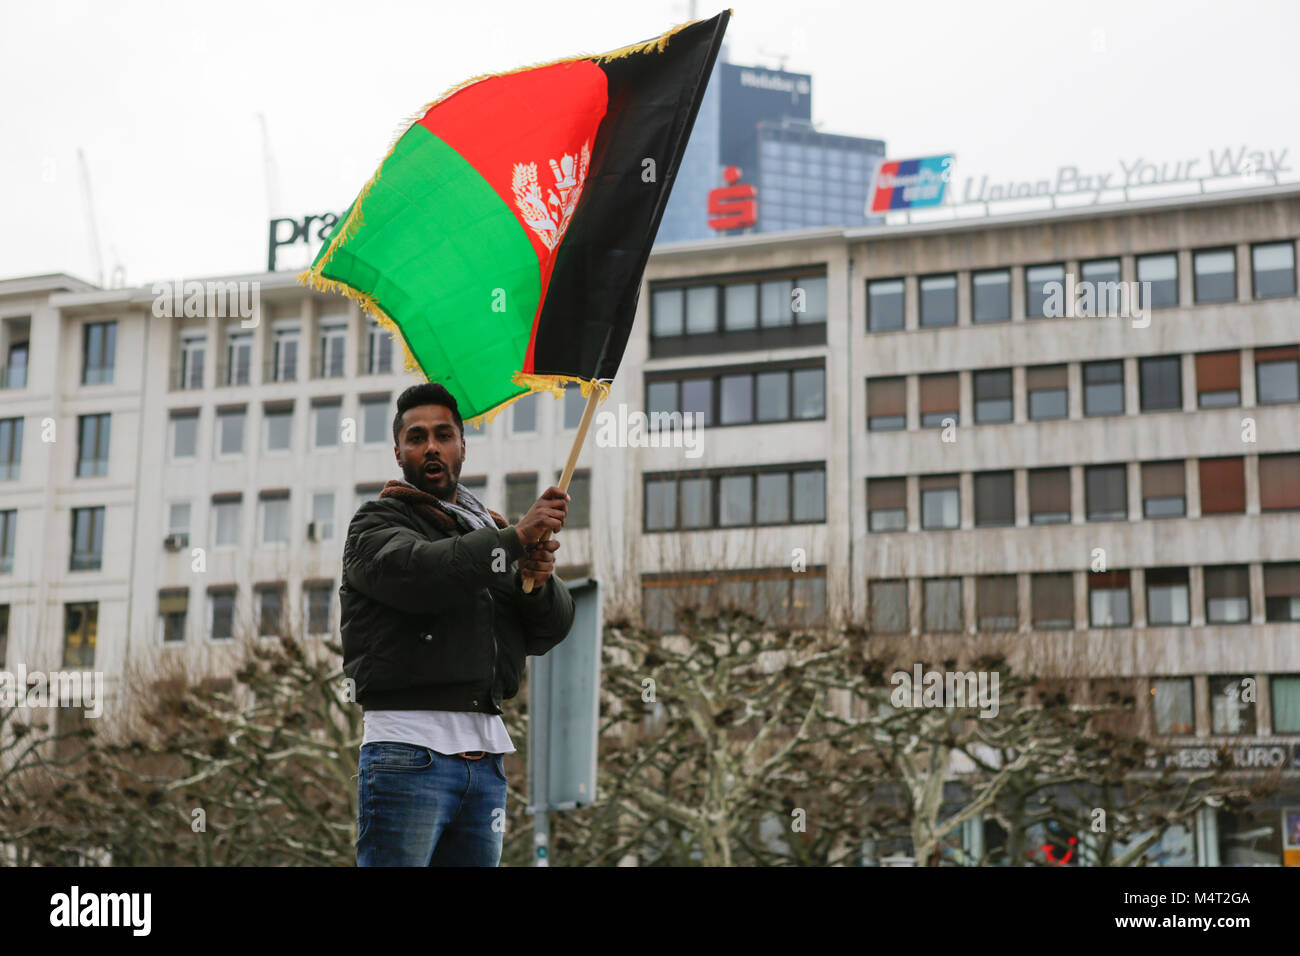 Frankfurt, Germany. 17th February 2018. A protester waves a flag of the Kingdom of Afghanistan. Afghans and German Stock Photo